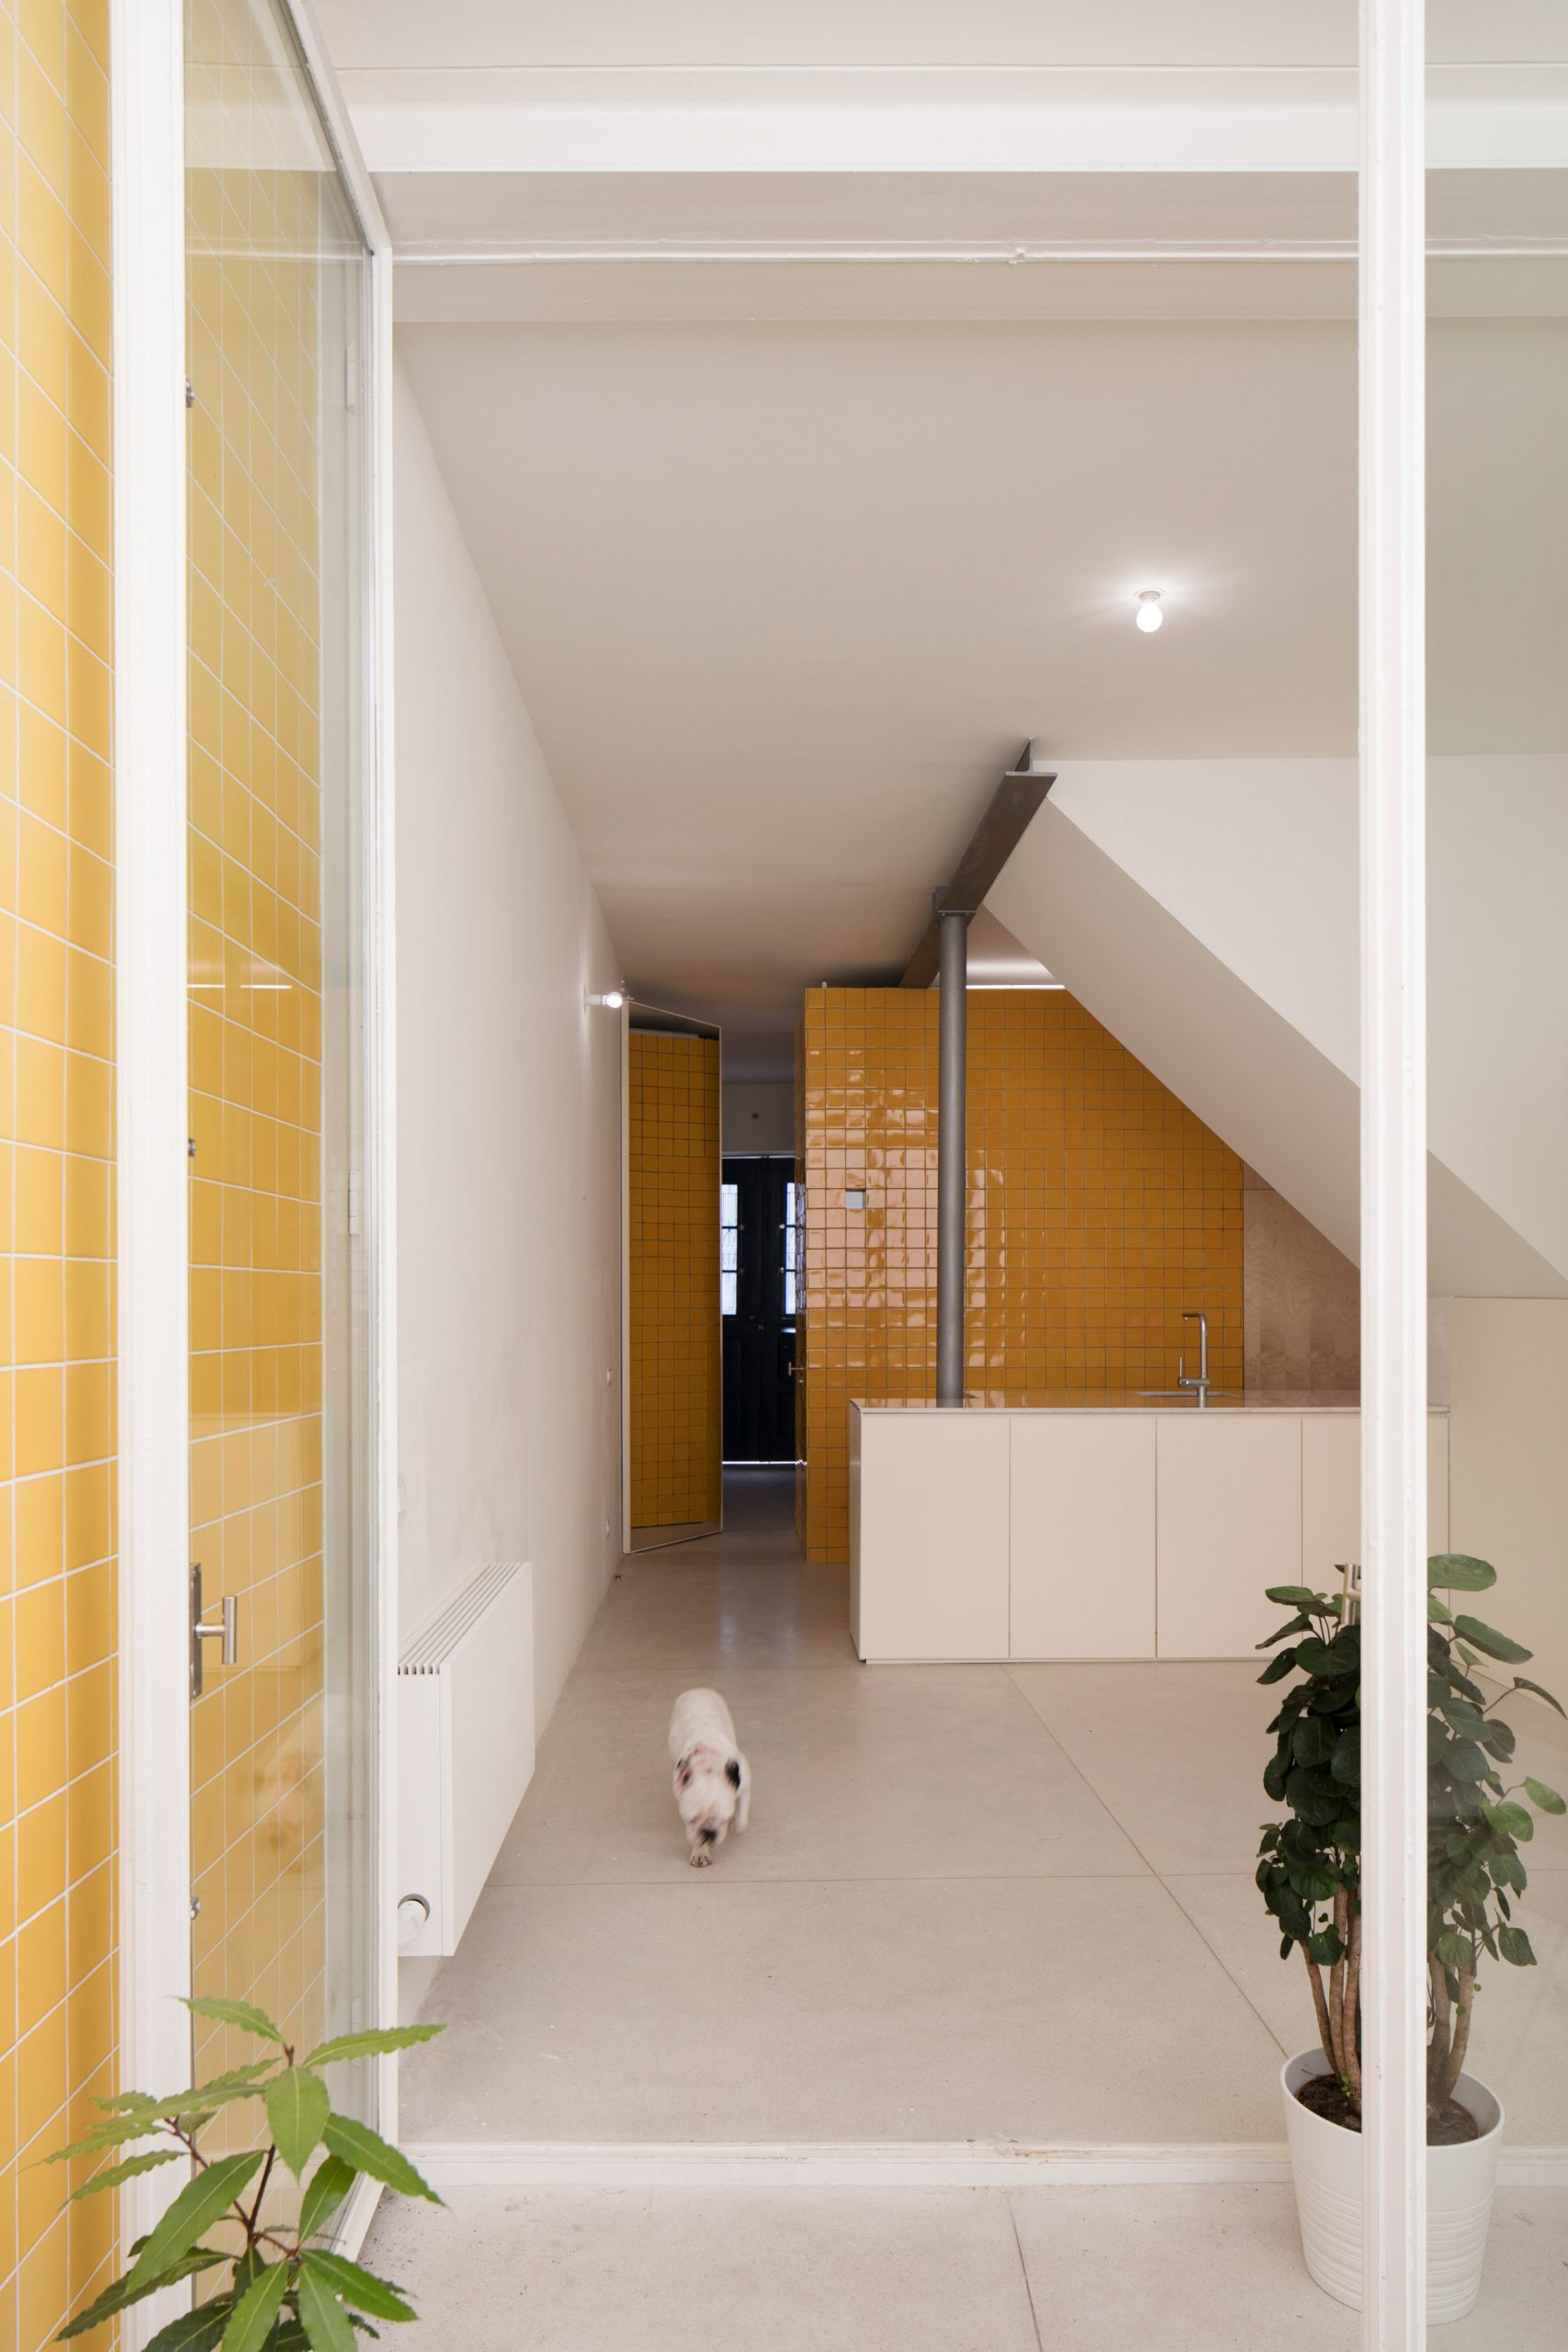 Downstairs kitchen with yellow tiles from the Casa da Beiramar by Merooficina